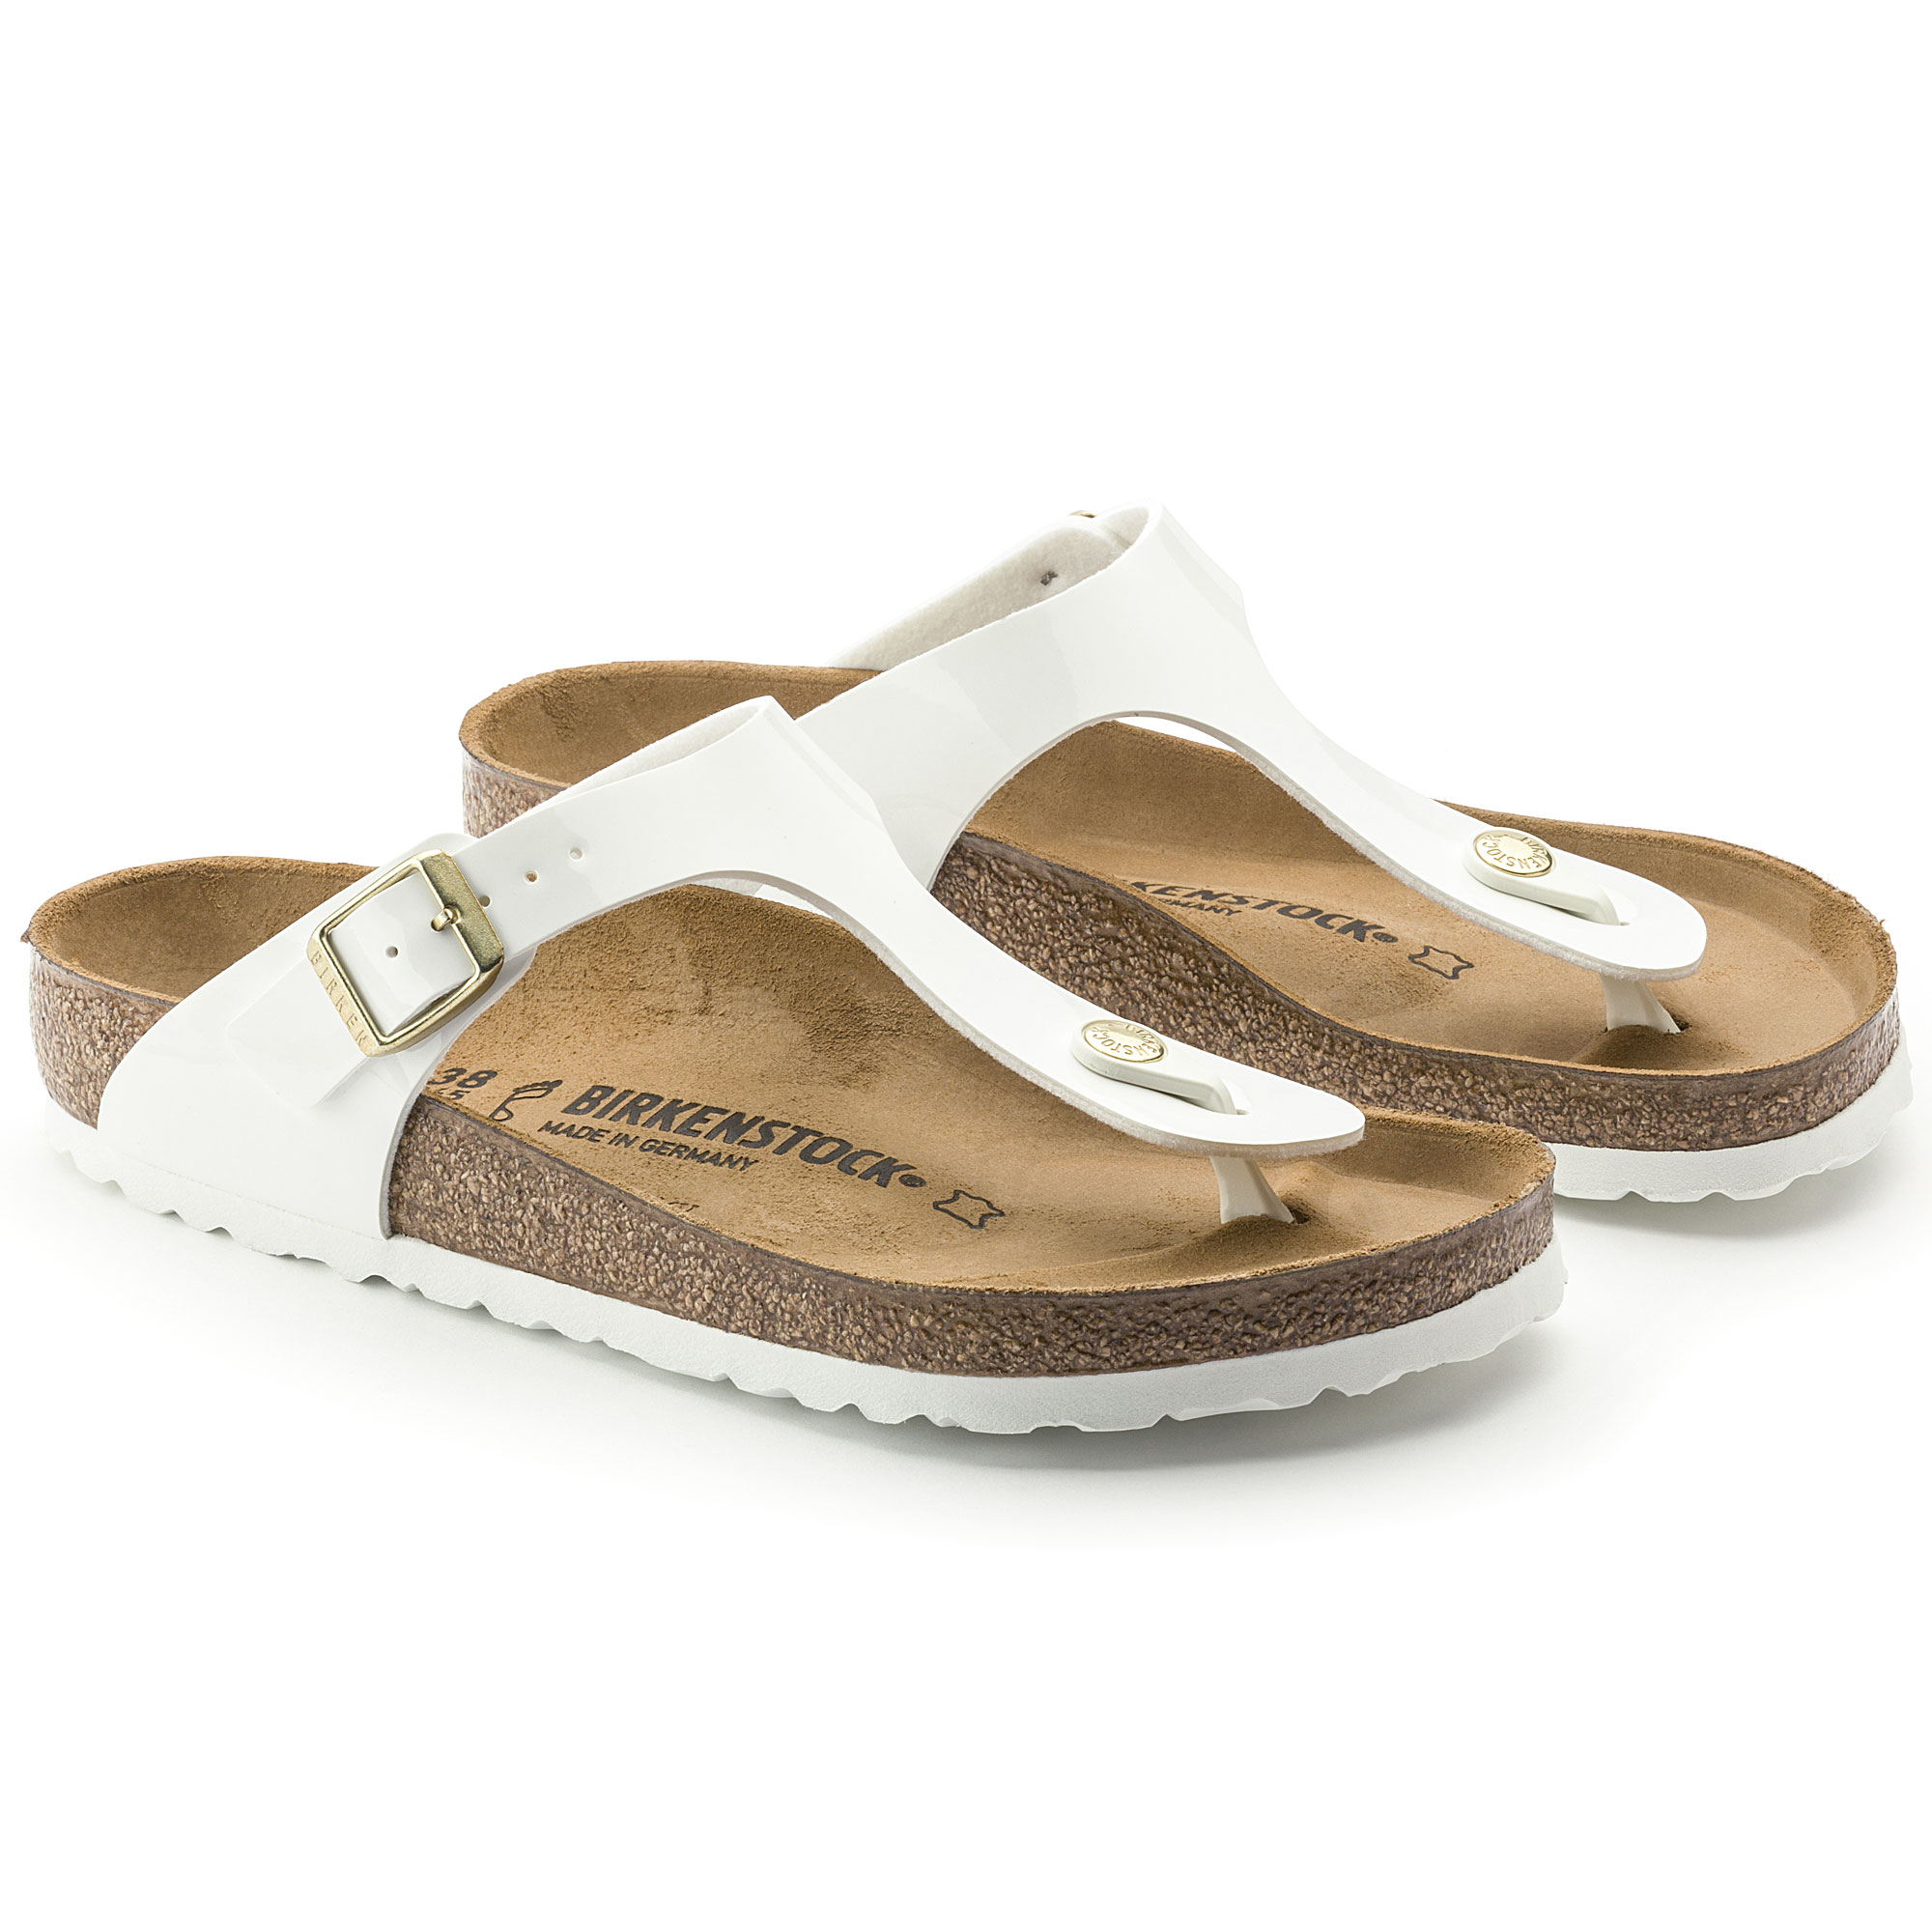 Gizeh Birko Flor Low Thong Sandals in Bright White Patent